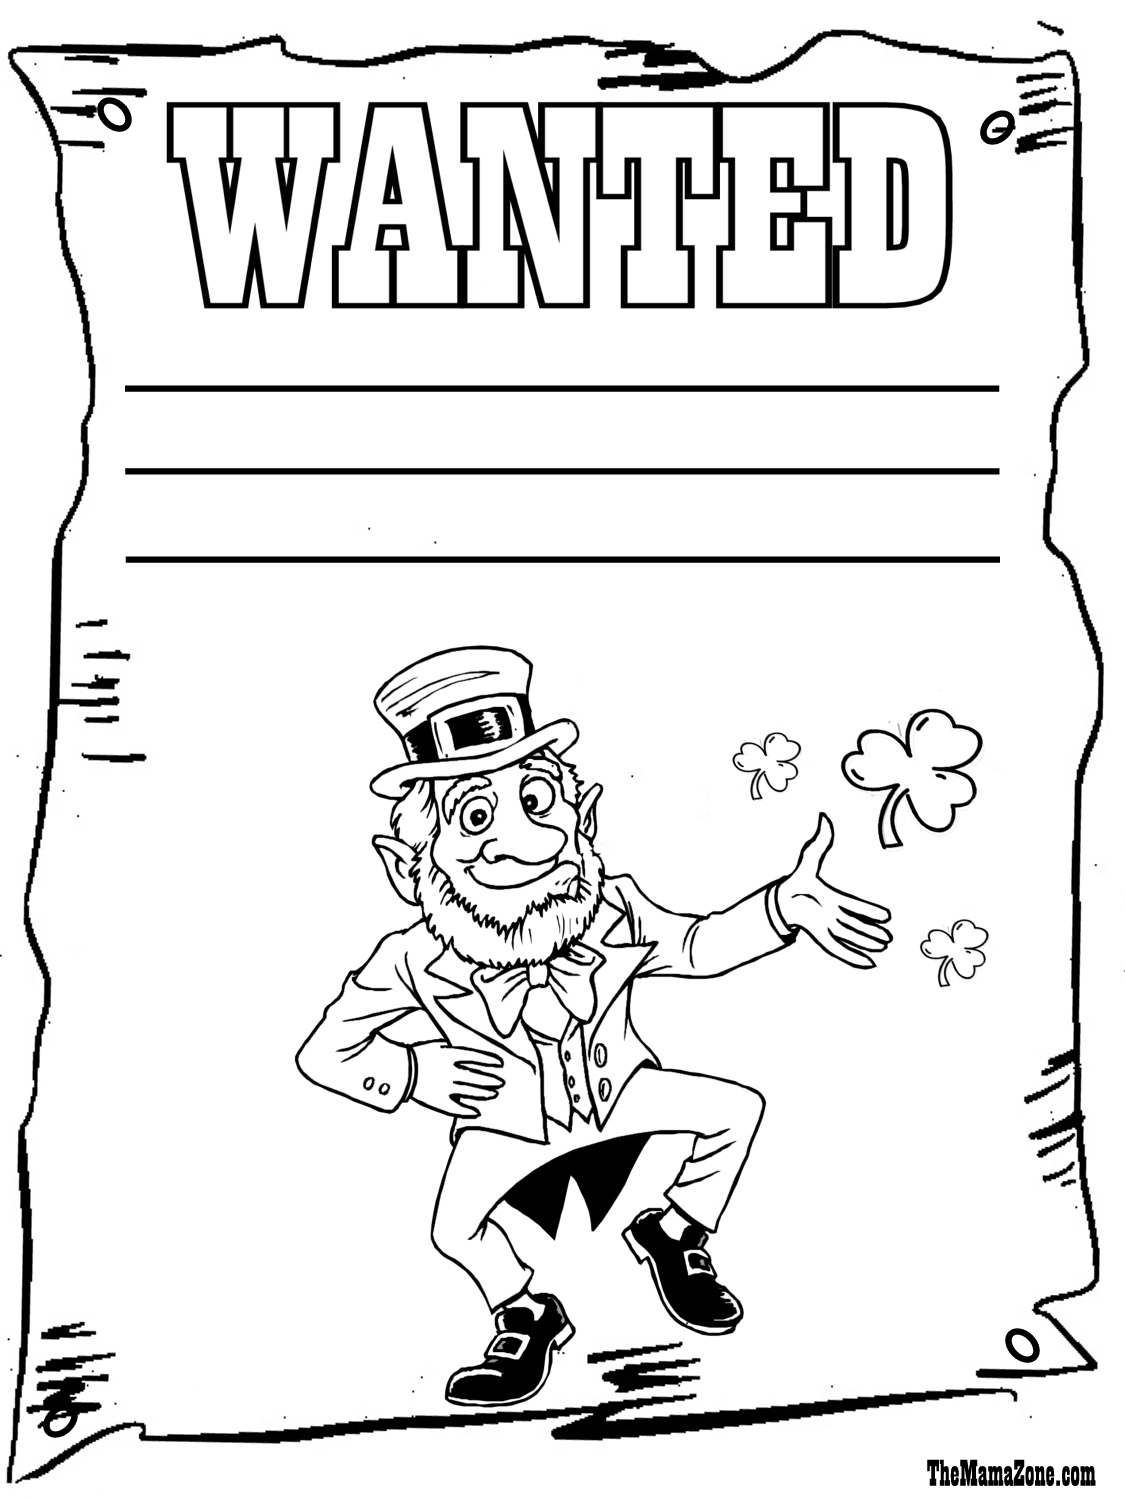 Saint Patrick S Day Coloring Pages The Mama Zone Halloween Coloring Pages Halloween Coloring Coloring Pages [ 1500 x 1125 Pixel ]